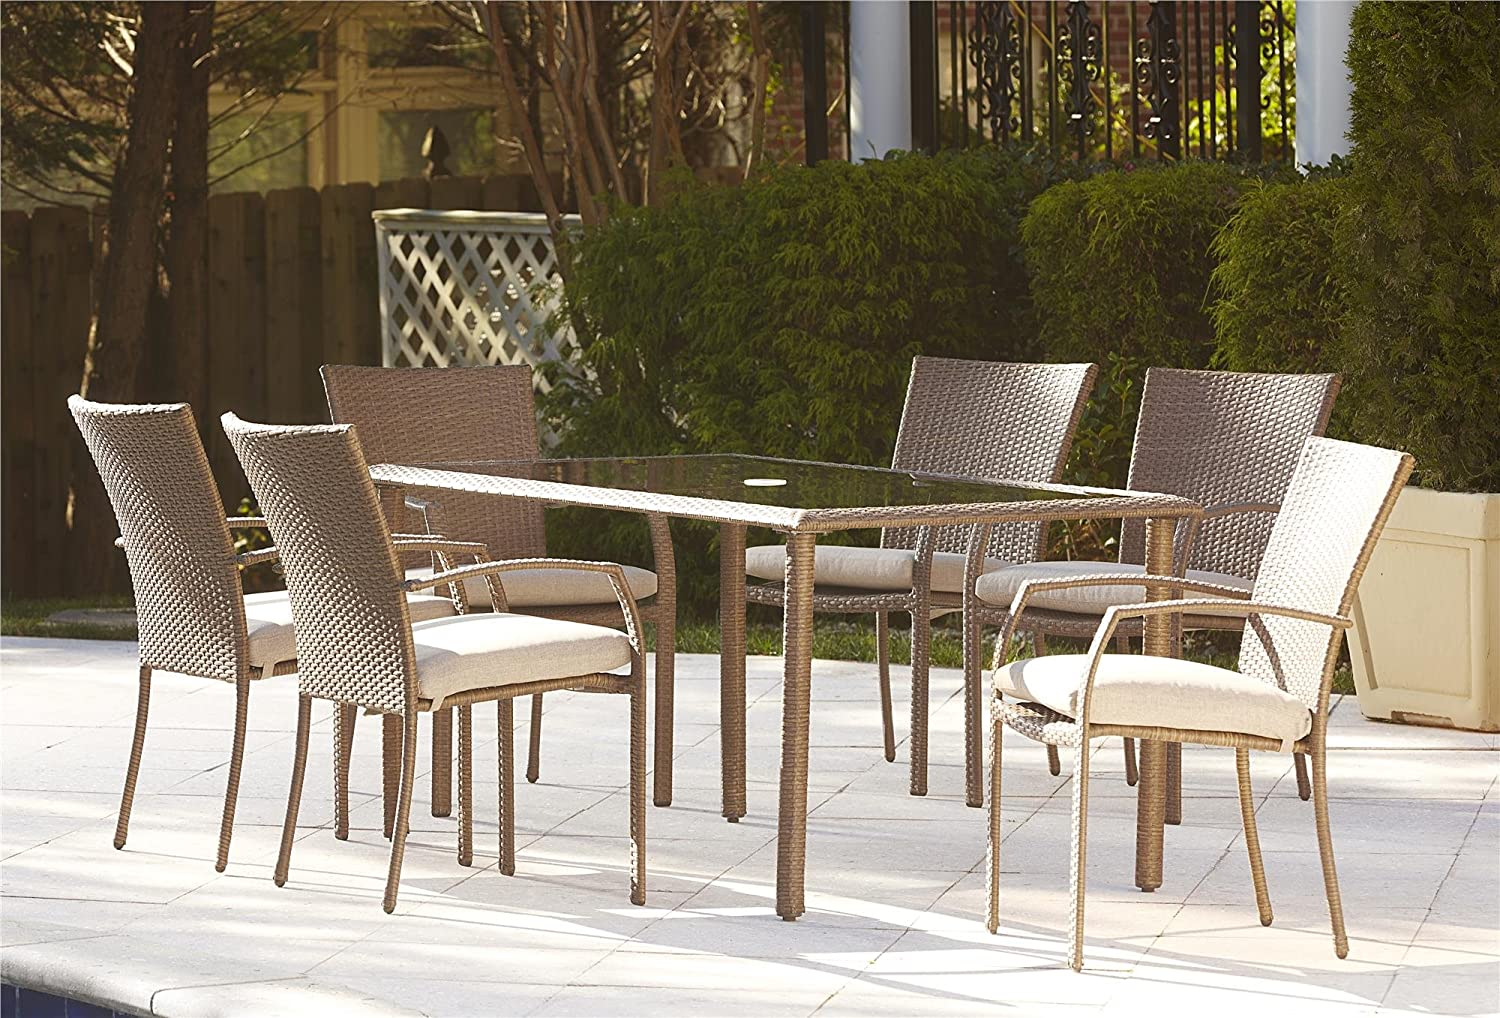 idea wooden table furniture uk com nonsensical set dining wood patio stylish garden sets eksmfg